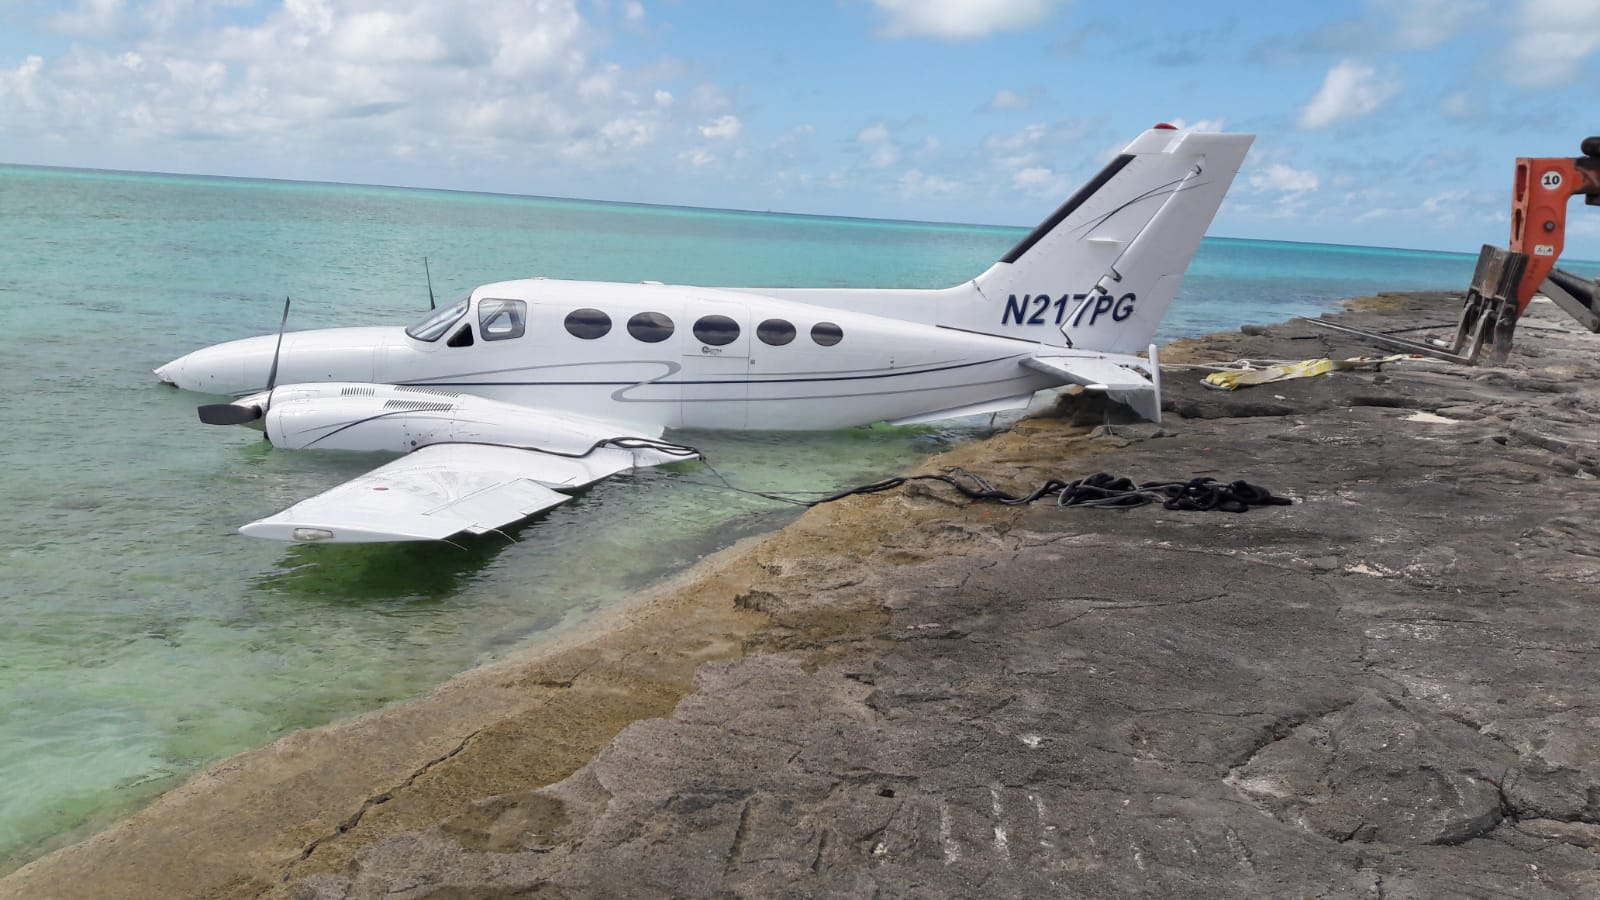 Airplane crashes off Norman's Cay